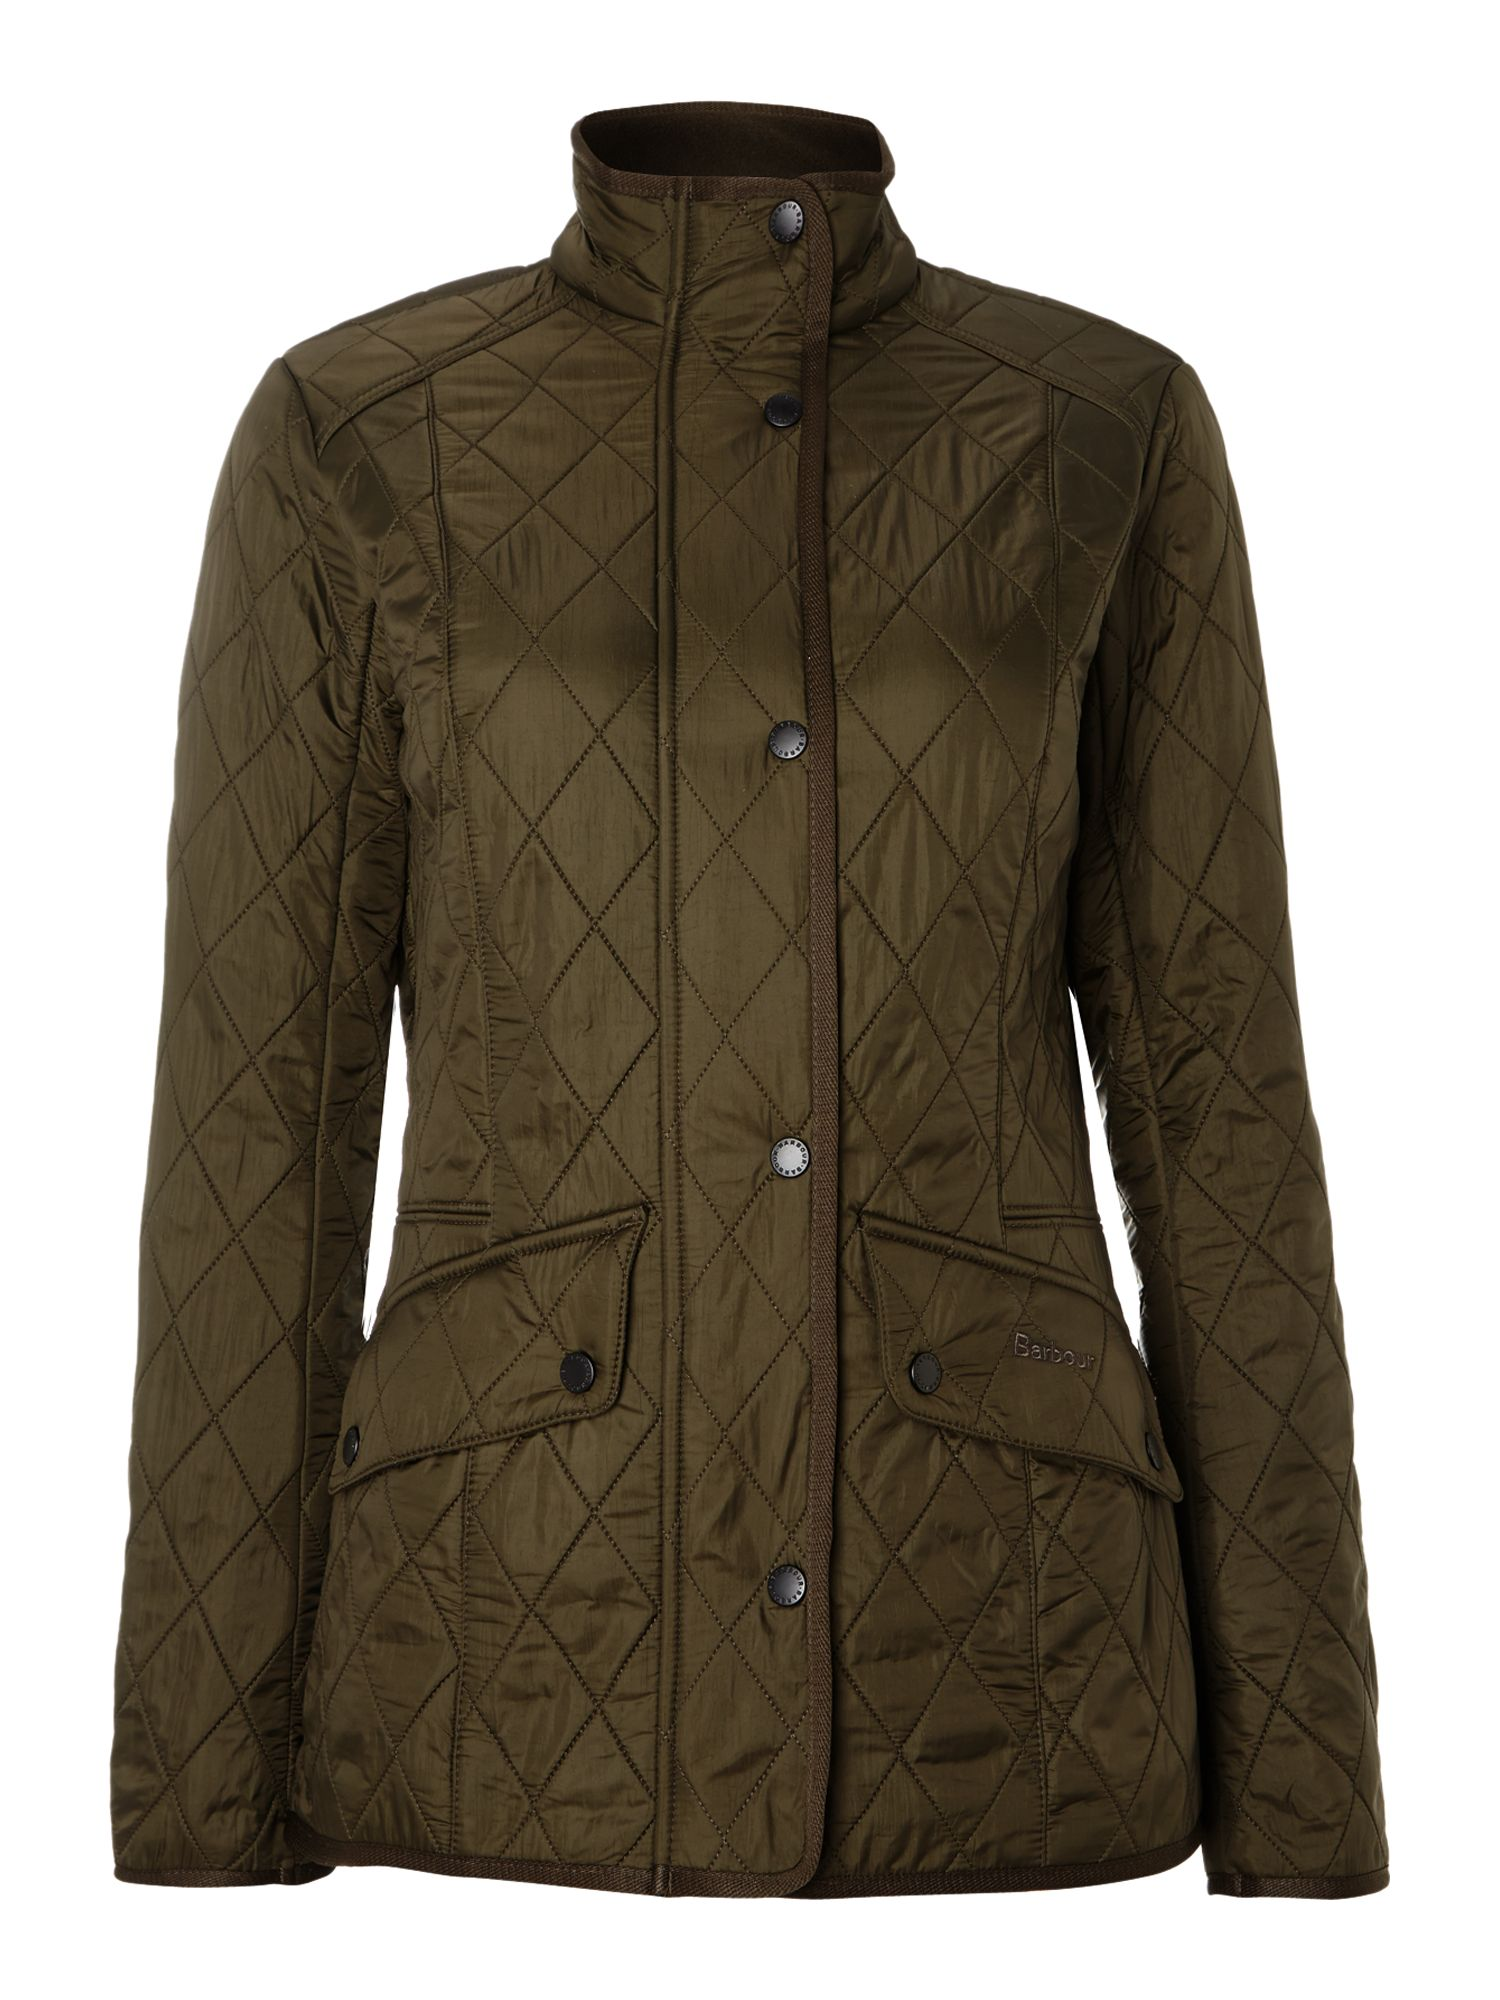 Barbour Cavalary polarquilt jacket, Olive